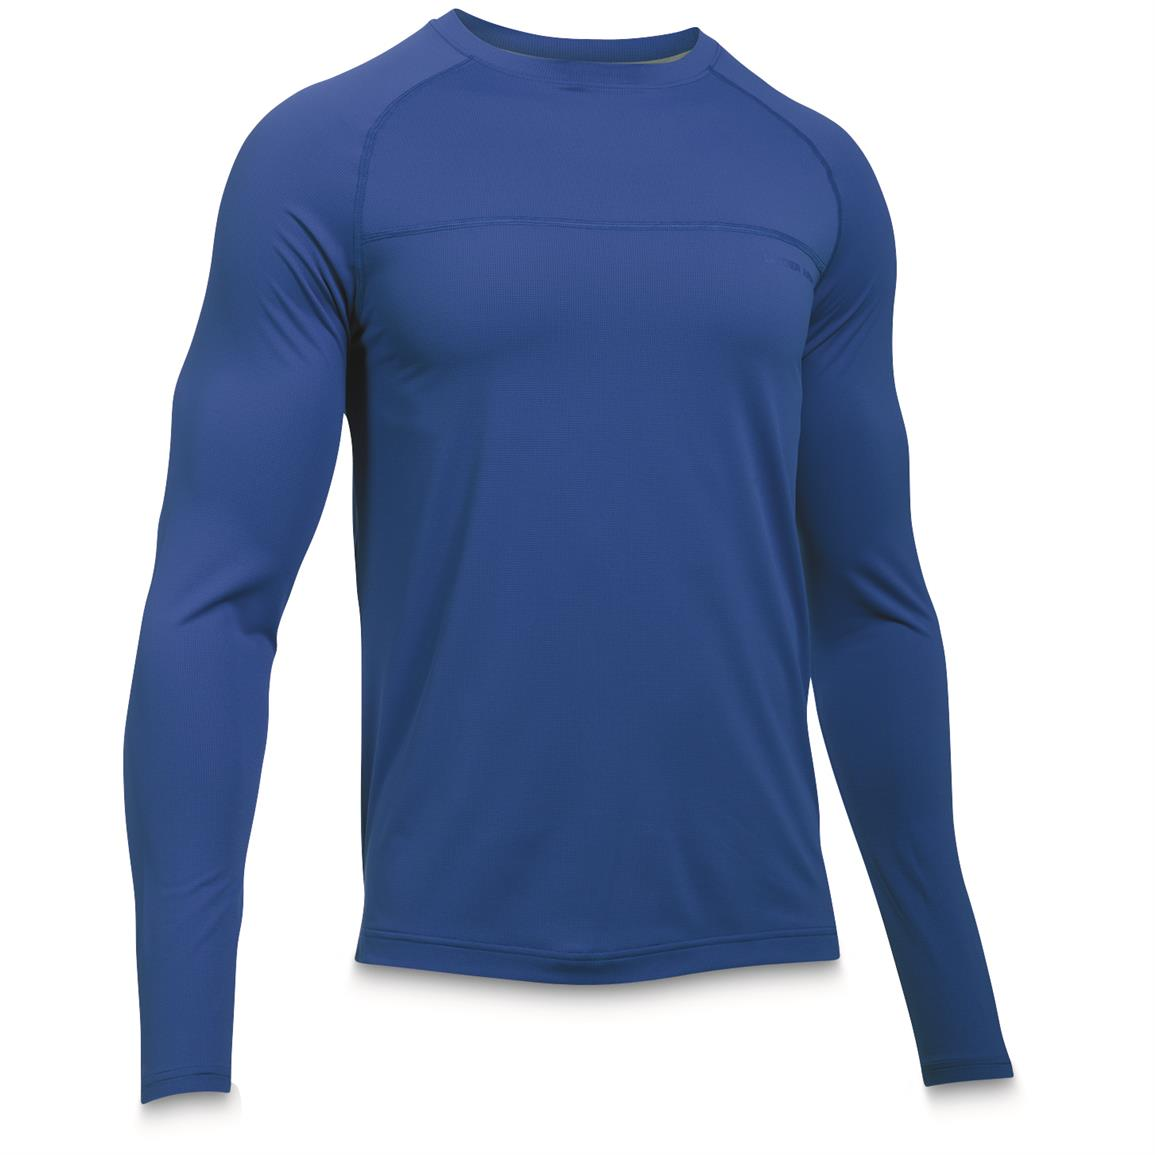 Under Armour Men's Sunblock Long Sleeve Tee, UPF 50+, Blue Marker